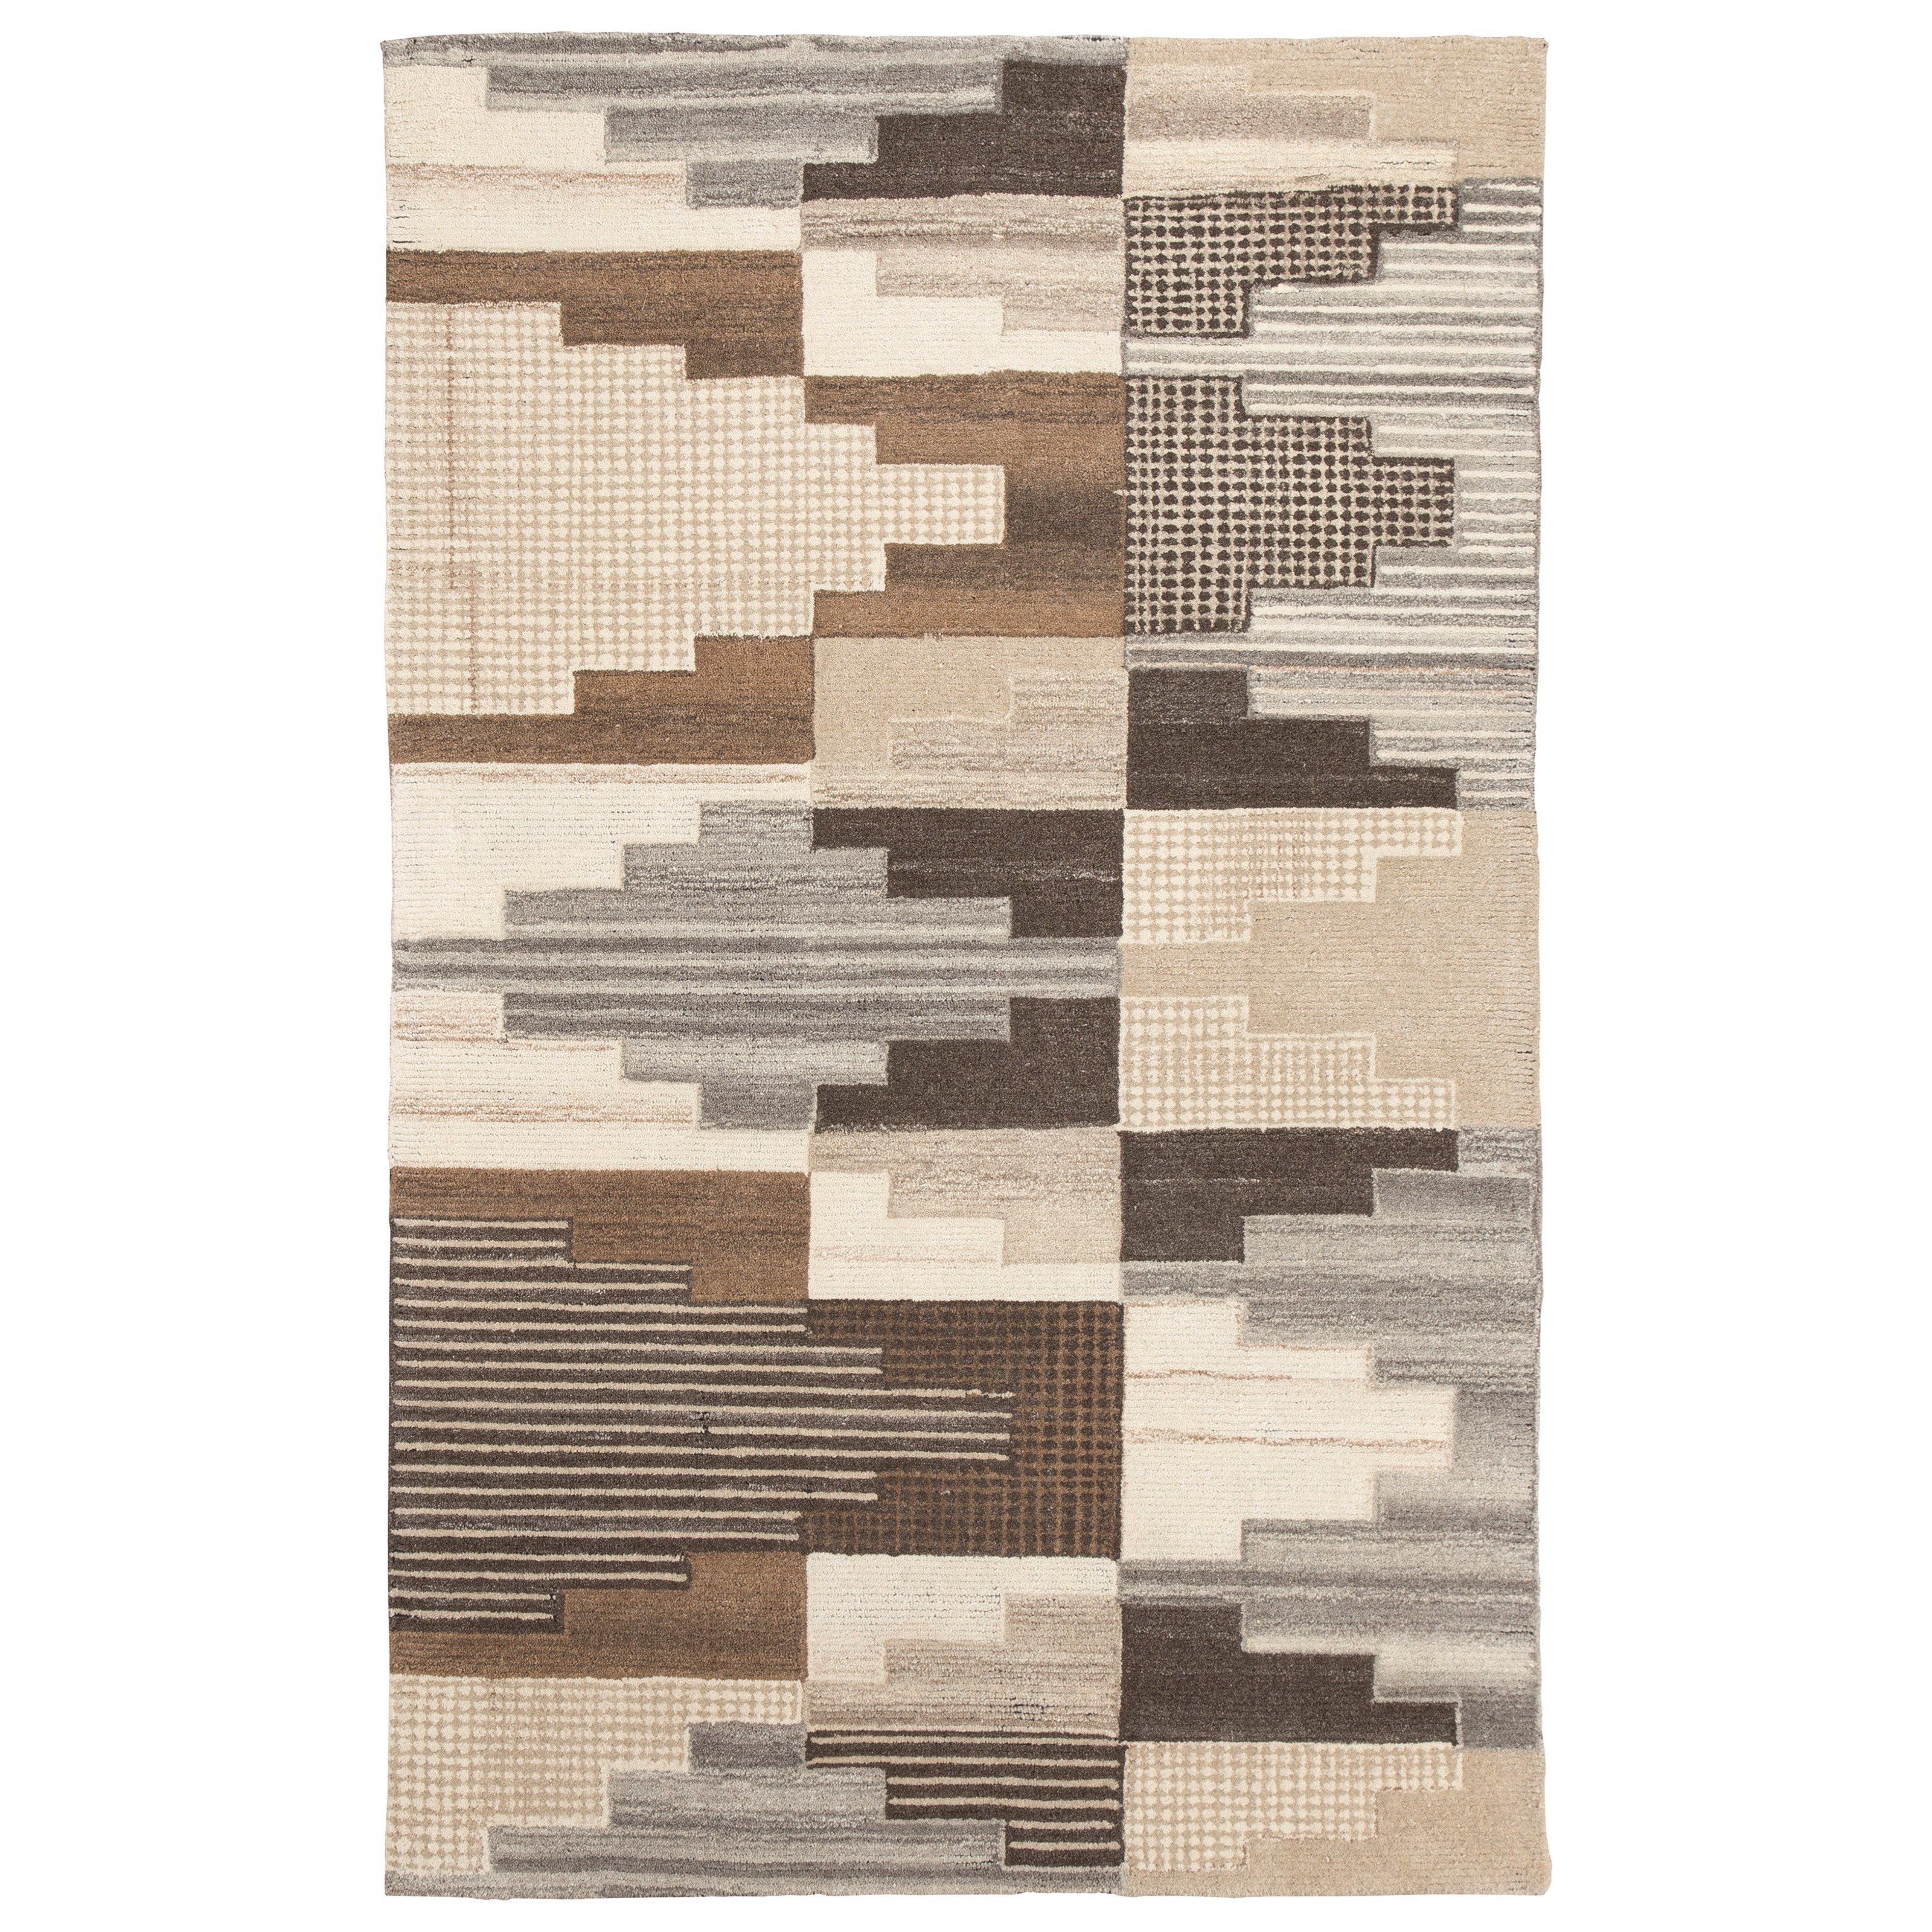 Signature Design by Ashley Contemporary Area Rugs Watnick Brown/Gray Large Rug - Item Number: R401671